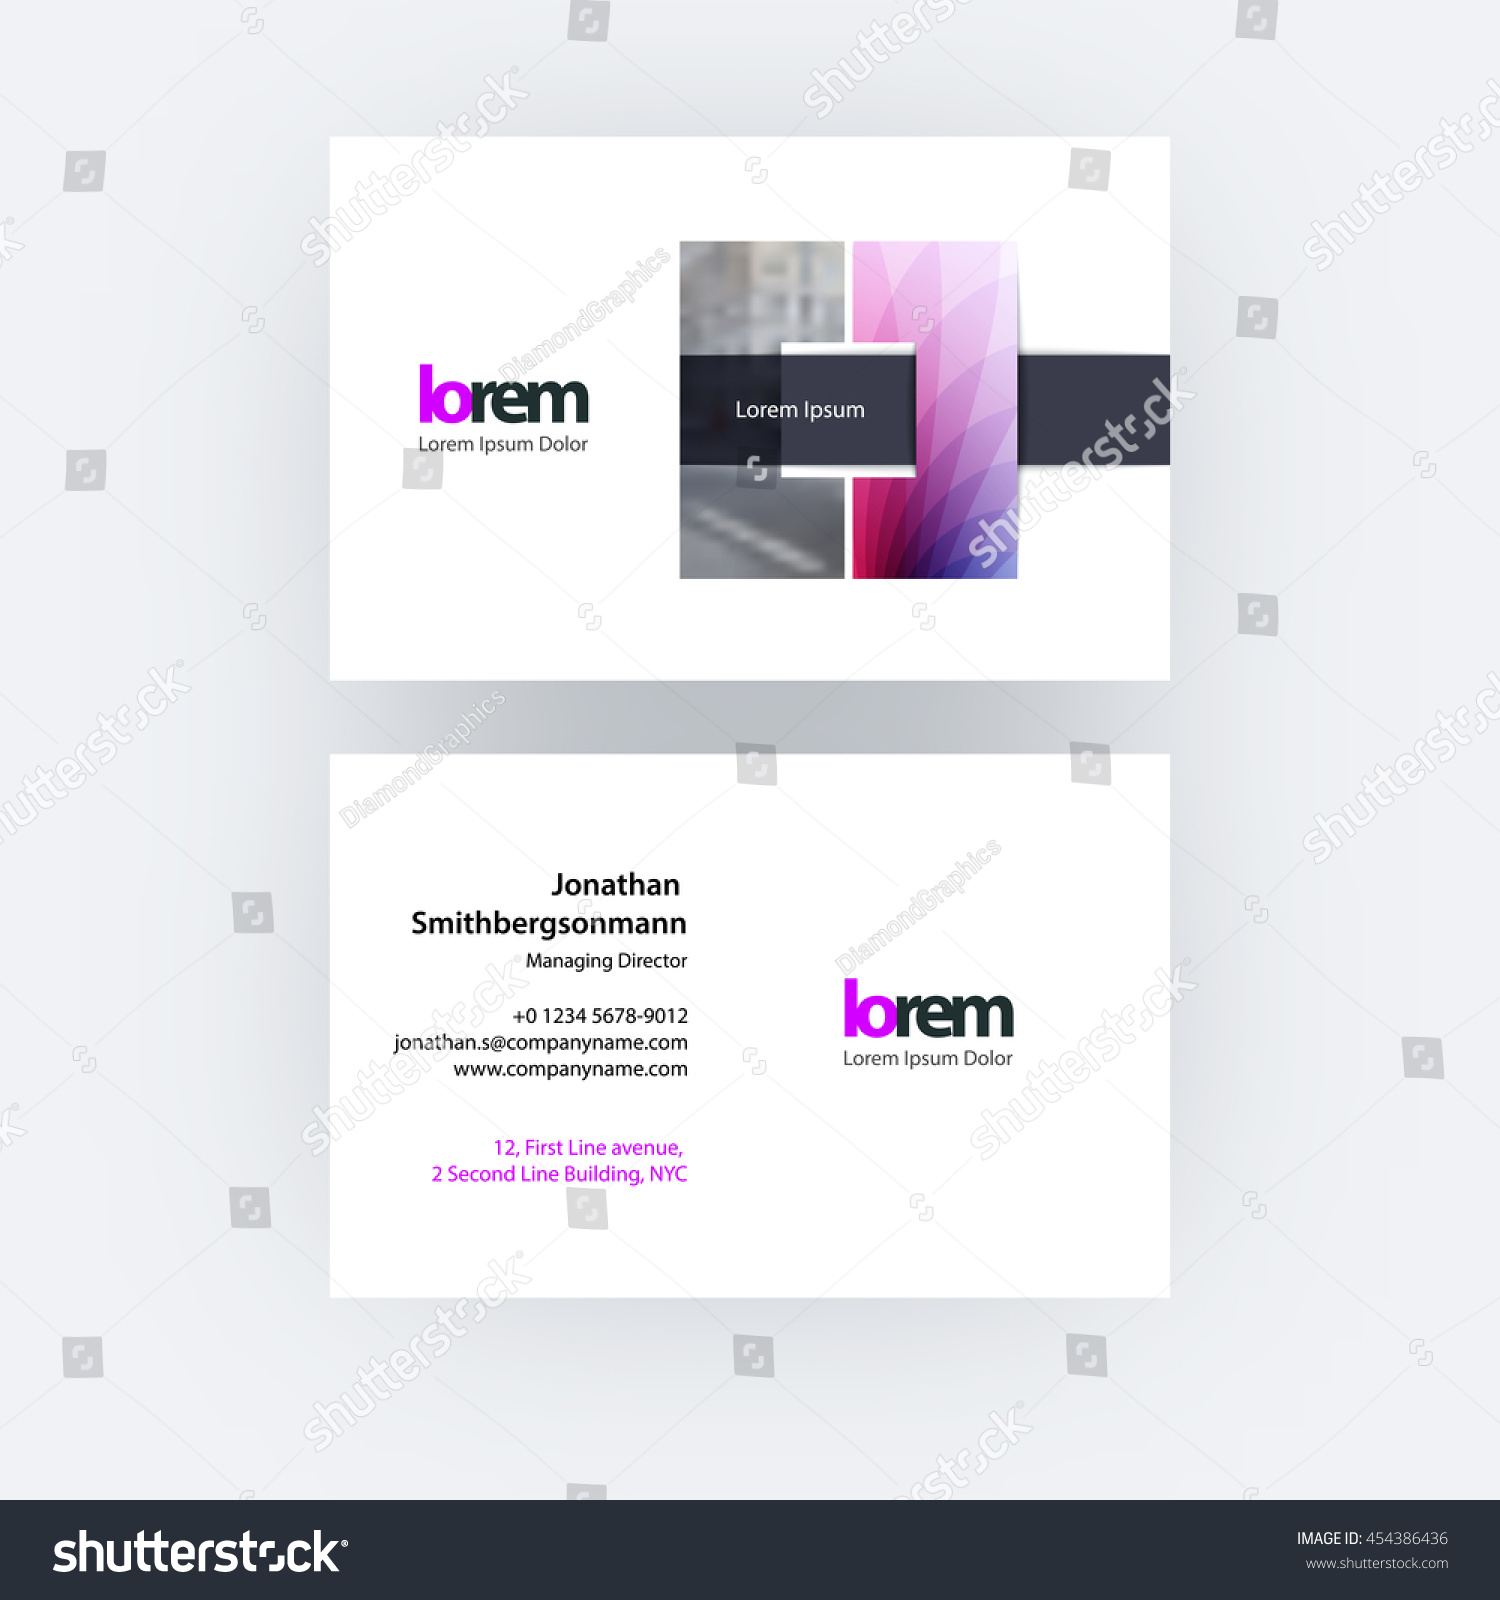 Vector Business Card Template Square Geometric Stock Vector ...